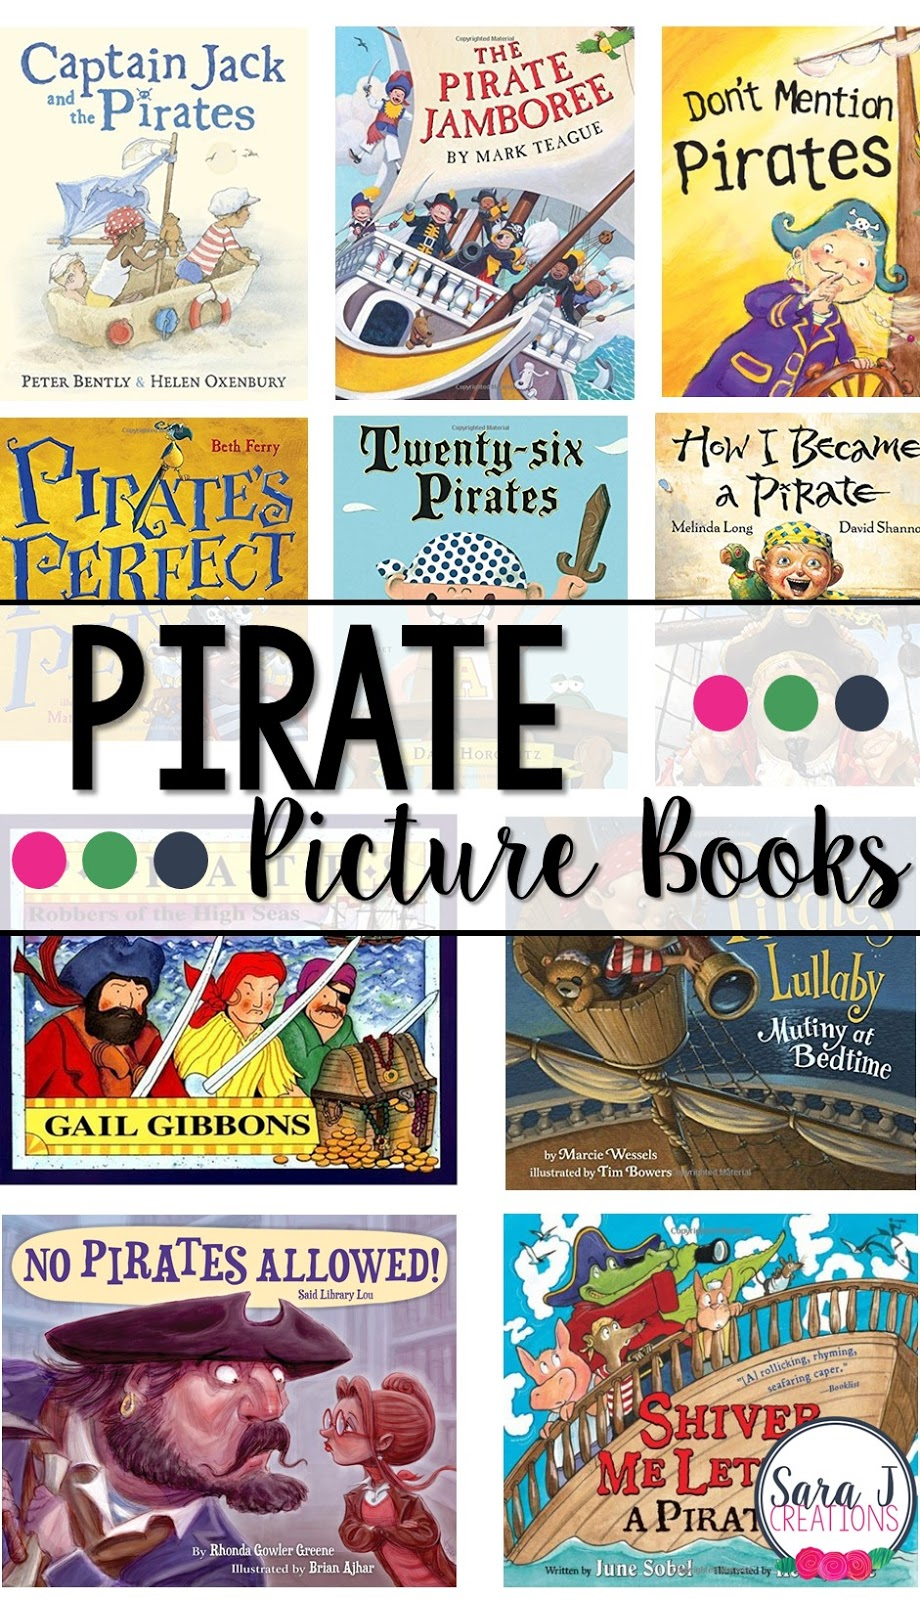 10 Pirate picture books for kids